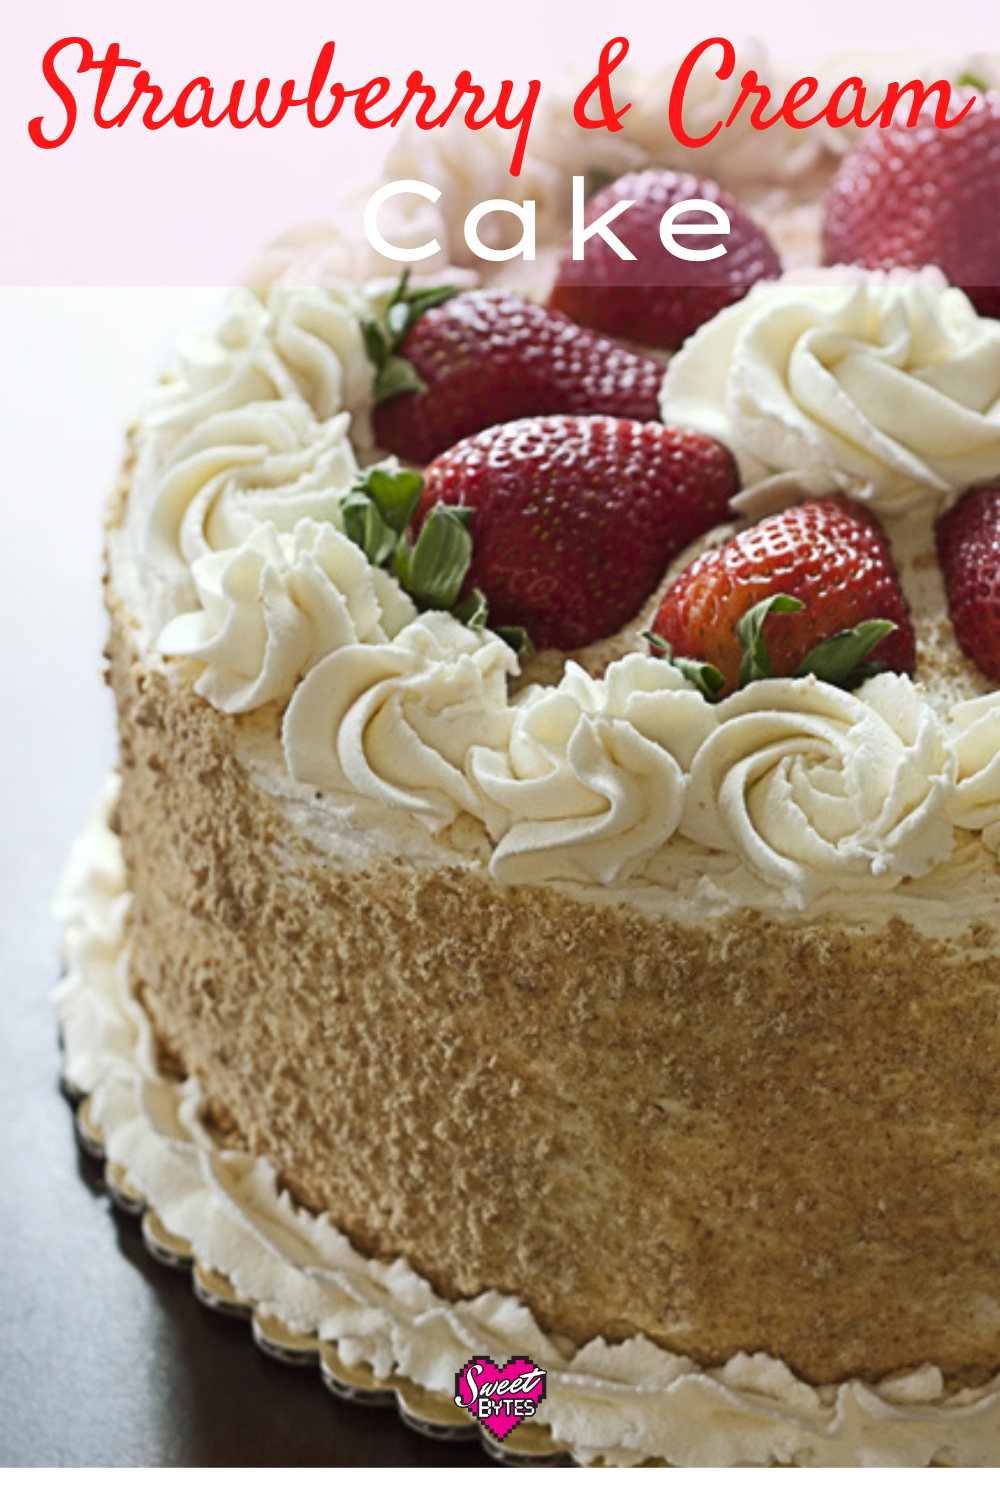 Strawberry and Cream Cake with Mascarpone Whipped cream and strawberries on top